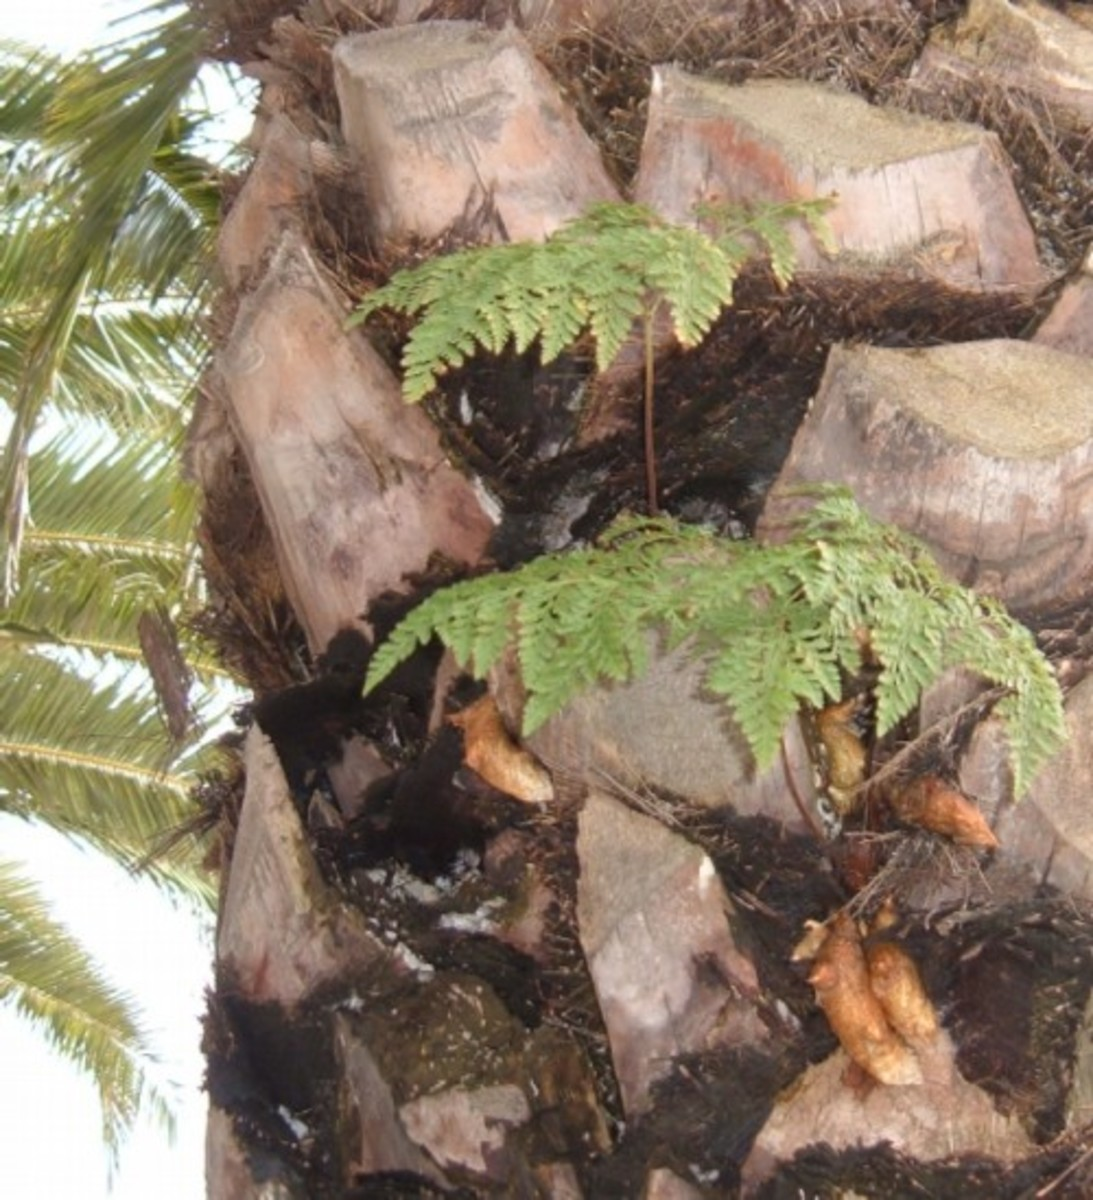 Tenerife epiphytes grow in Canary Islands palm trees